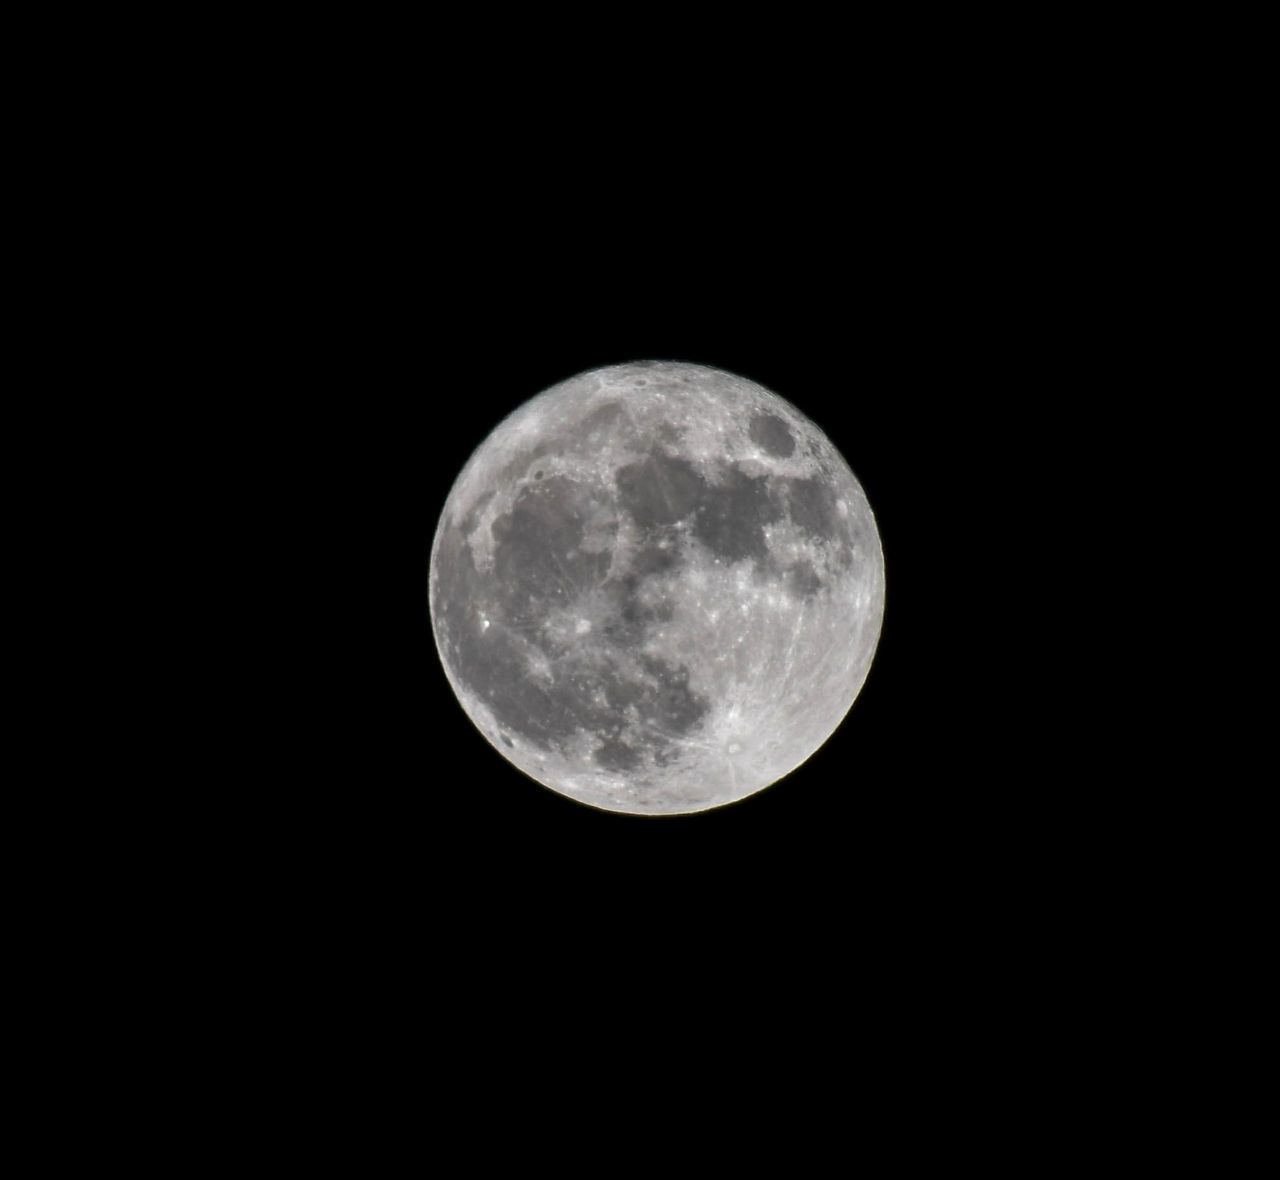 Astronomy Beauty In Nature Black Background Close-up Full Moon Moon Moon Surface Nature Night No People Outdoors Sky Space Tranquility